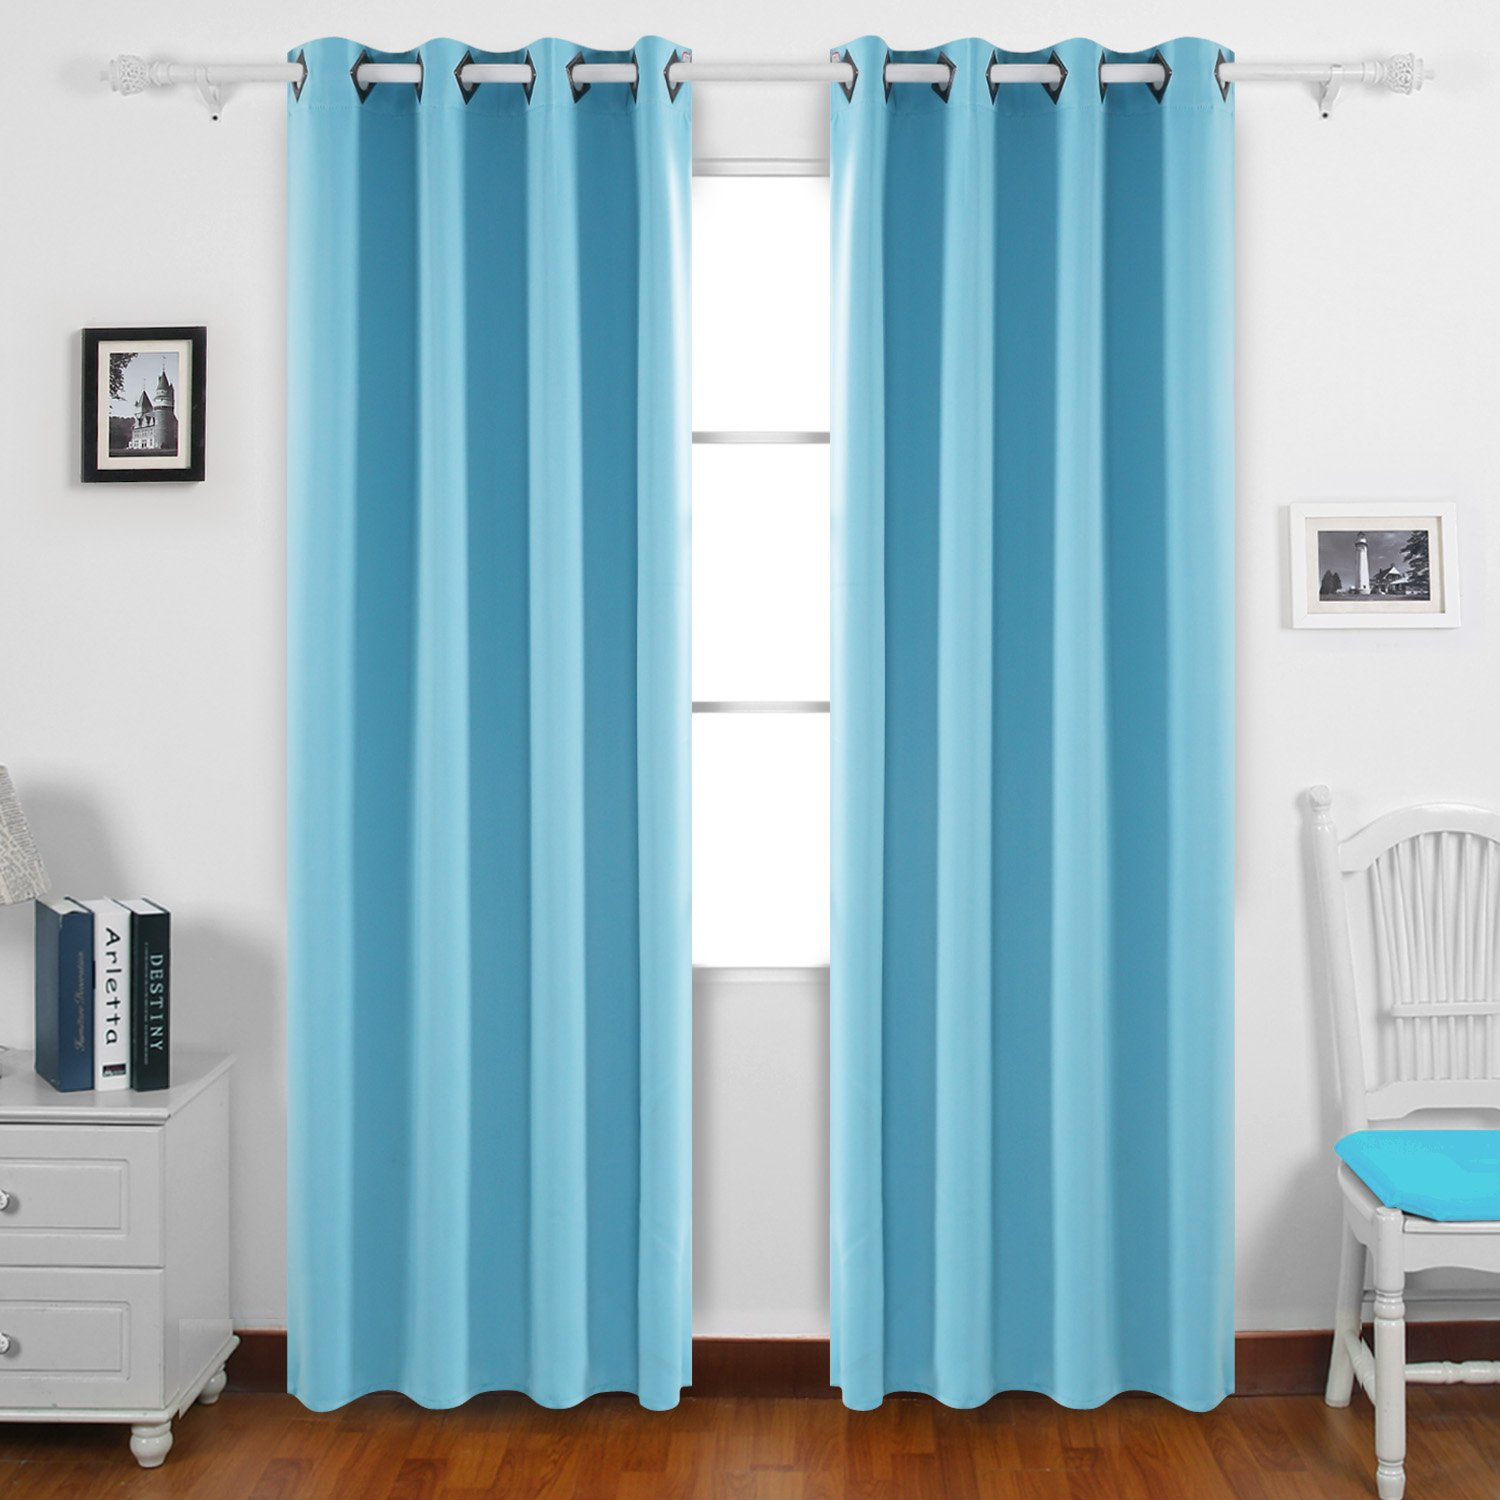 amazonthermal tags tag size thermal byonthermal at window full design inch walmart curtains curtainson remarkable insulated of curtain by amazon images